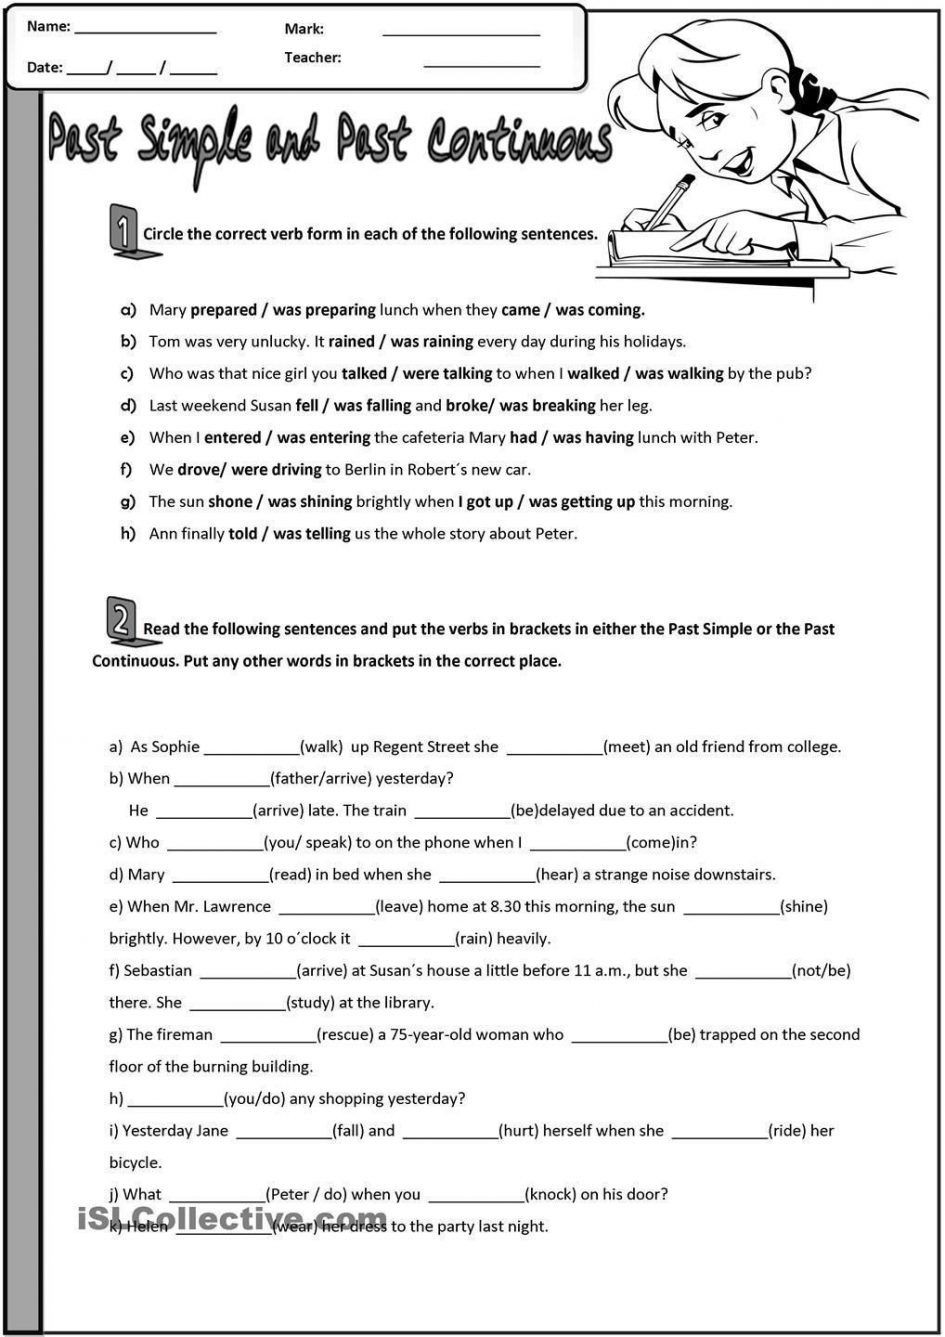 Free High School Grammar Worksheets Excel Fun Grammar Worksheets for High School Kids